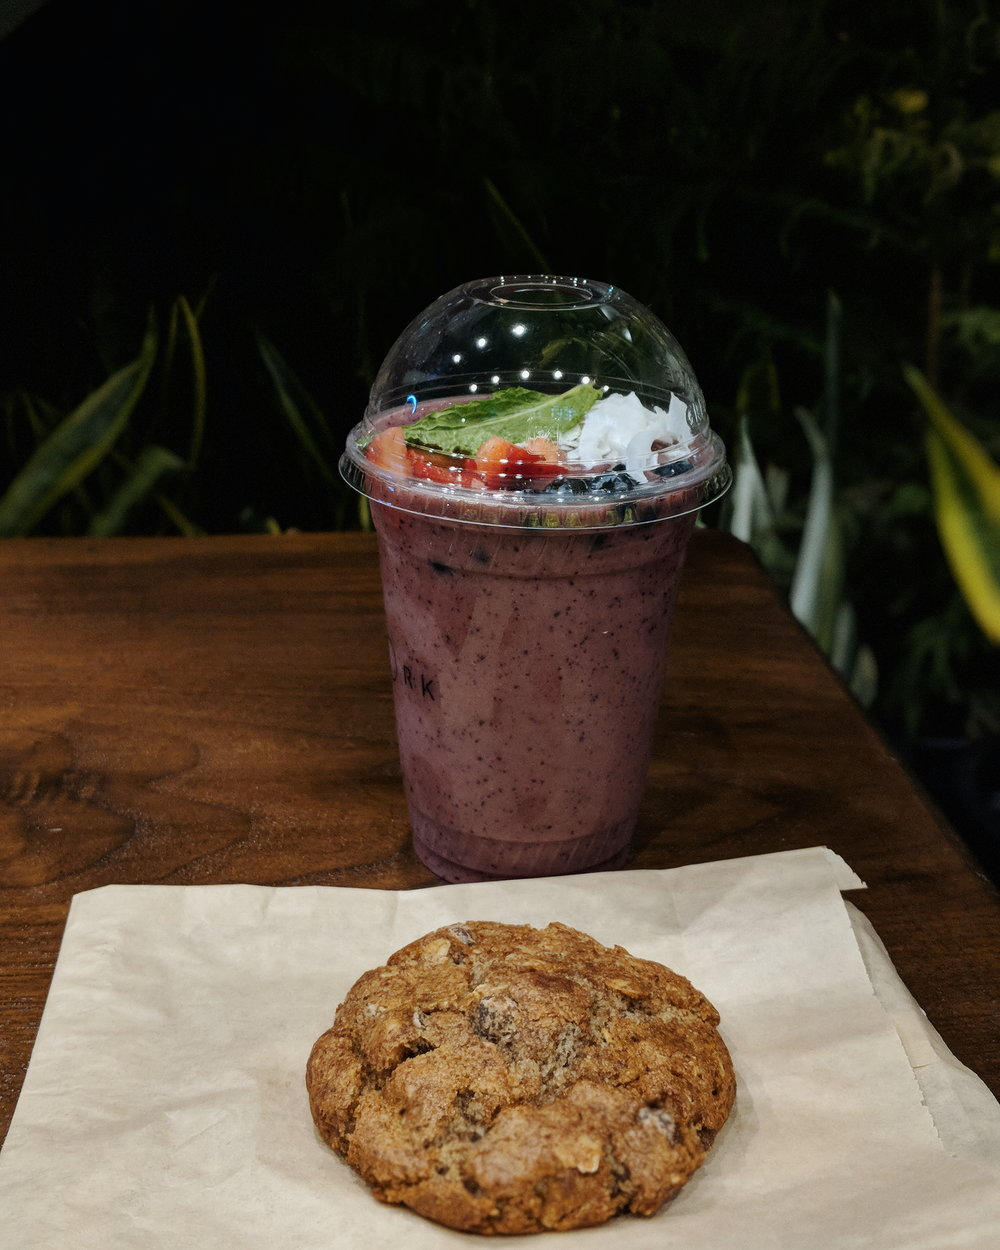 My yummy berry smoothie and chocolate walnut cookie.